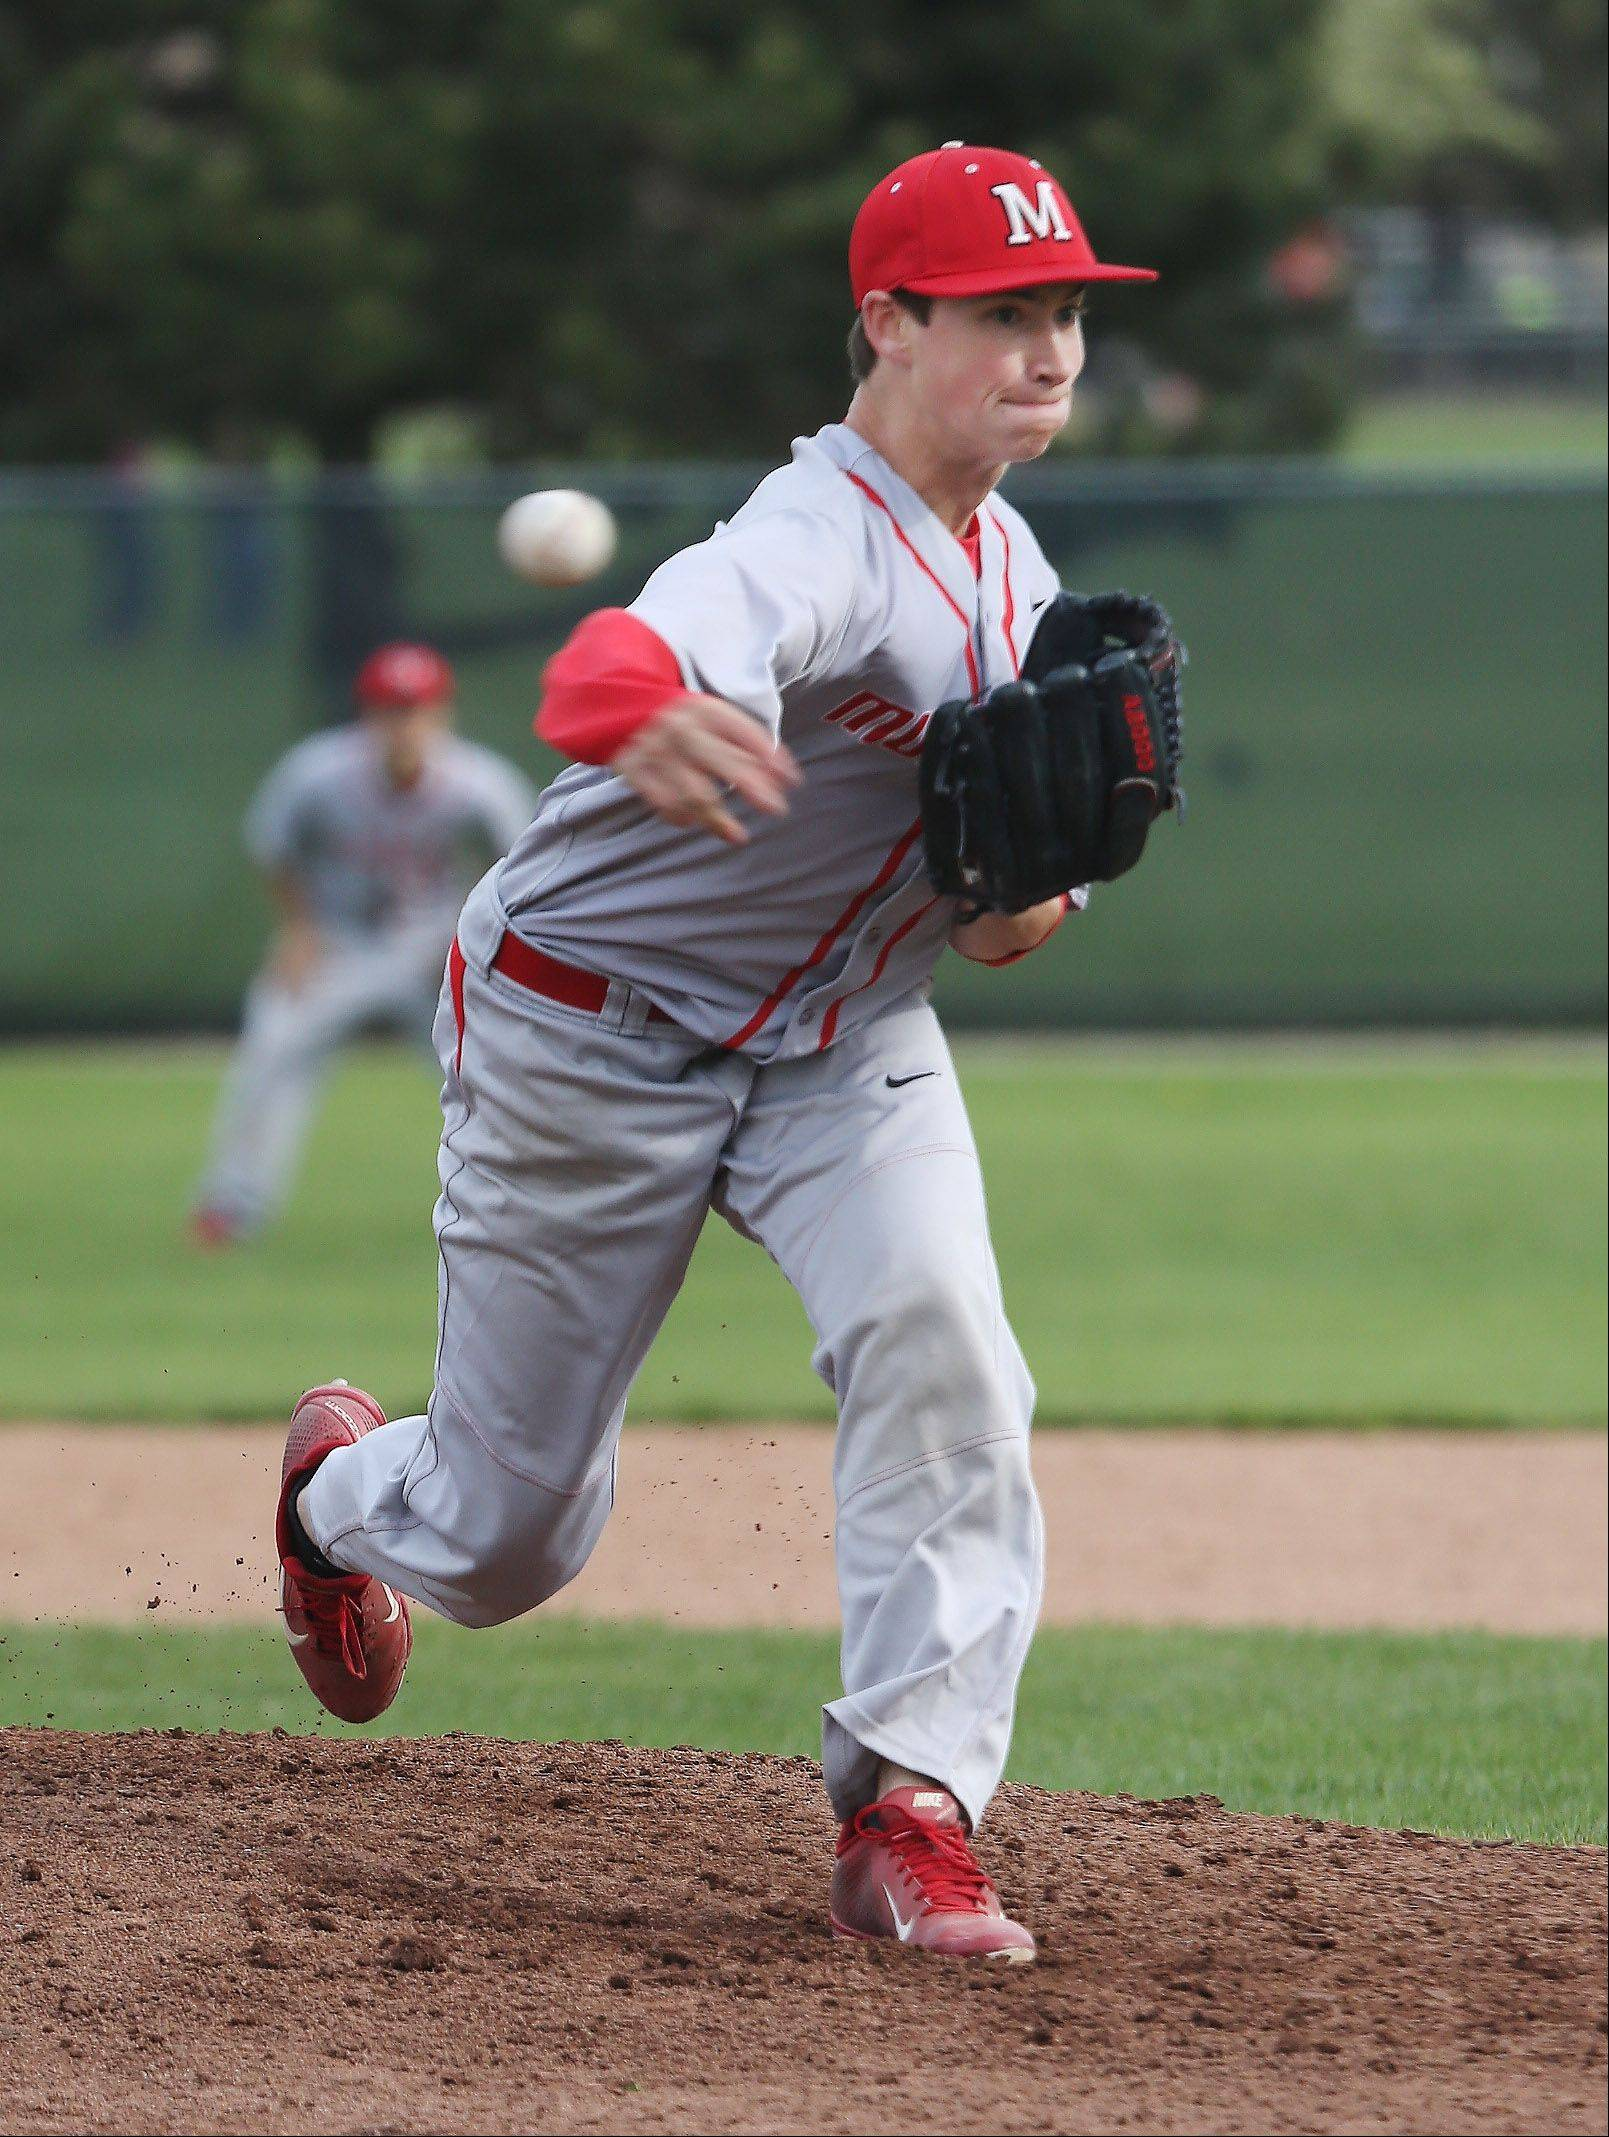 Mundelein pitcher Mitch Schulewitz delivers during the Mustangs' NSC Lake-clinching victory over host Stevenson on Monday.